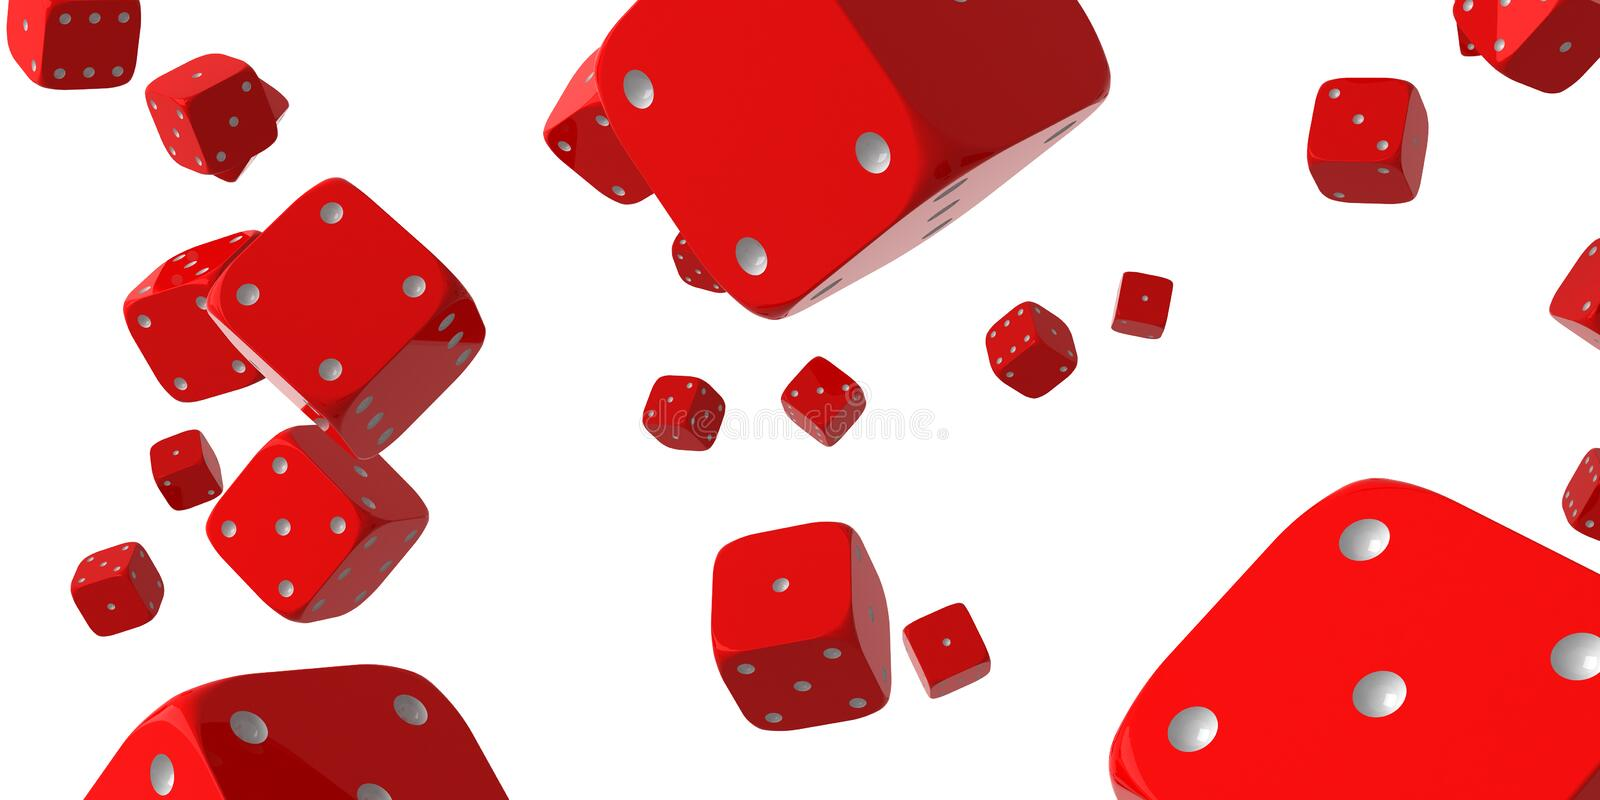 Falling dice stock illustration